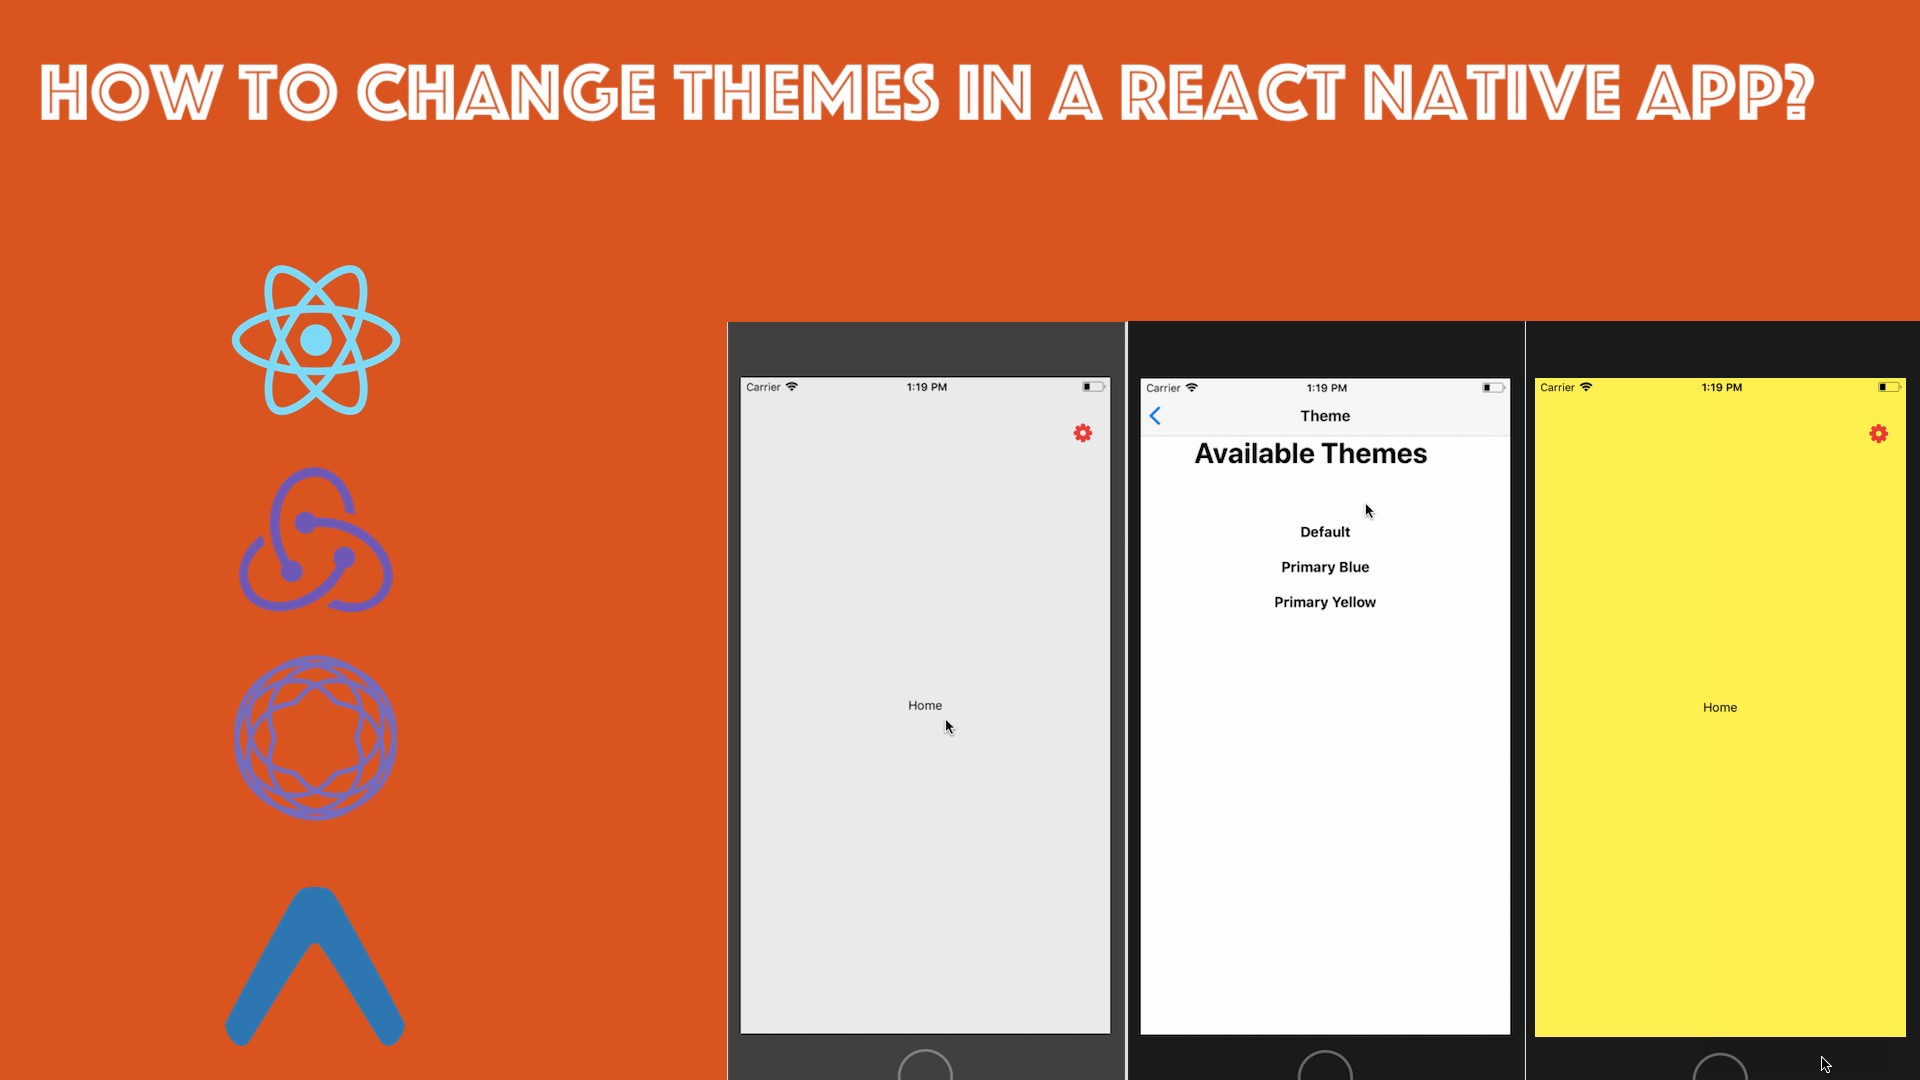 /simple-recipe-to-build-a-theme-app-in-react-native-8e2456f81bc5 feature image